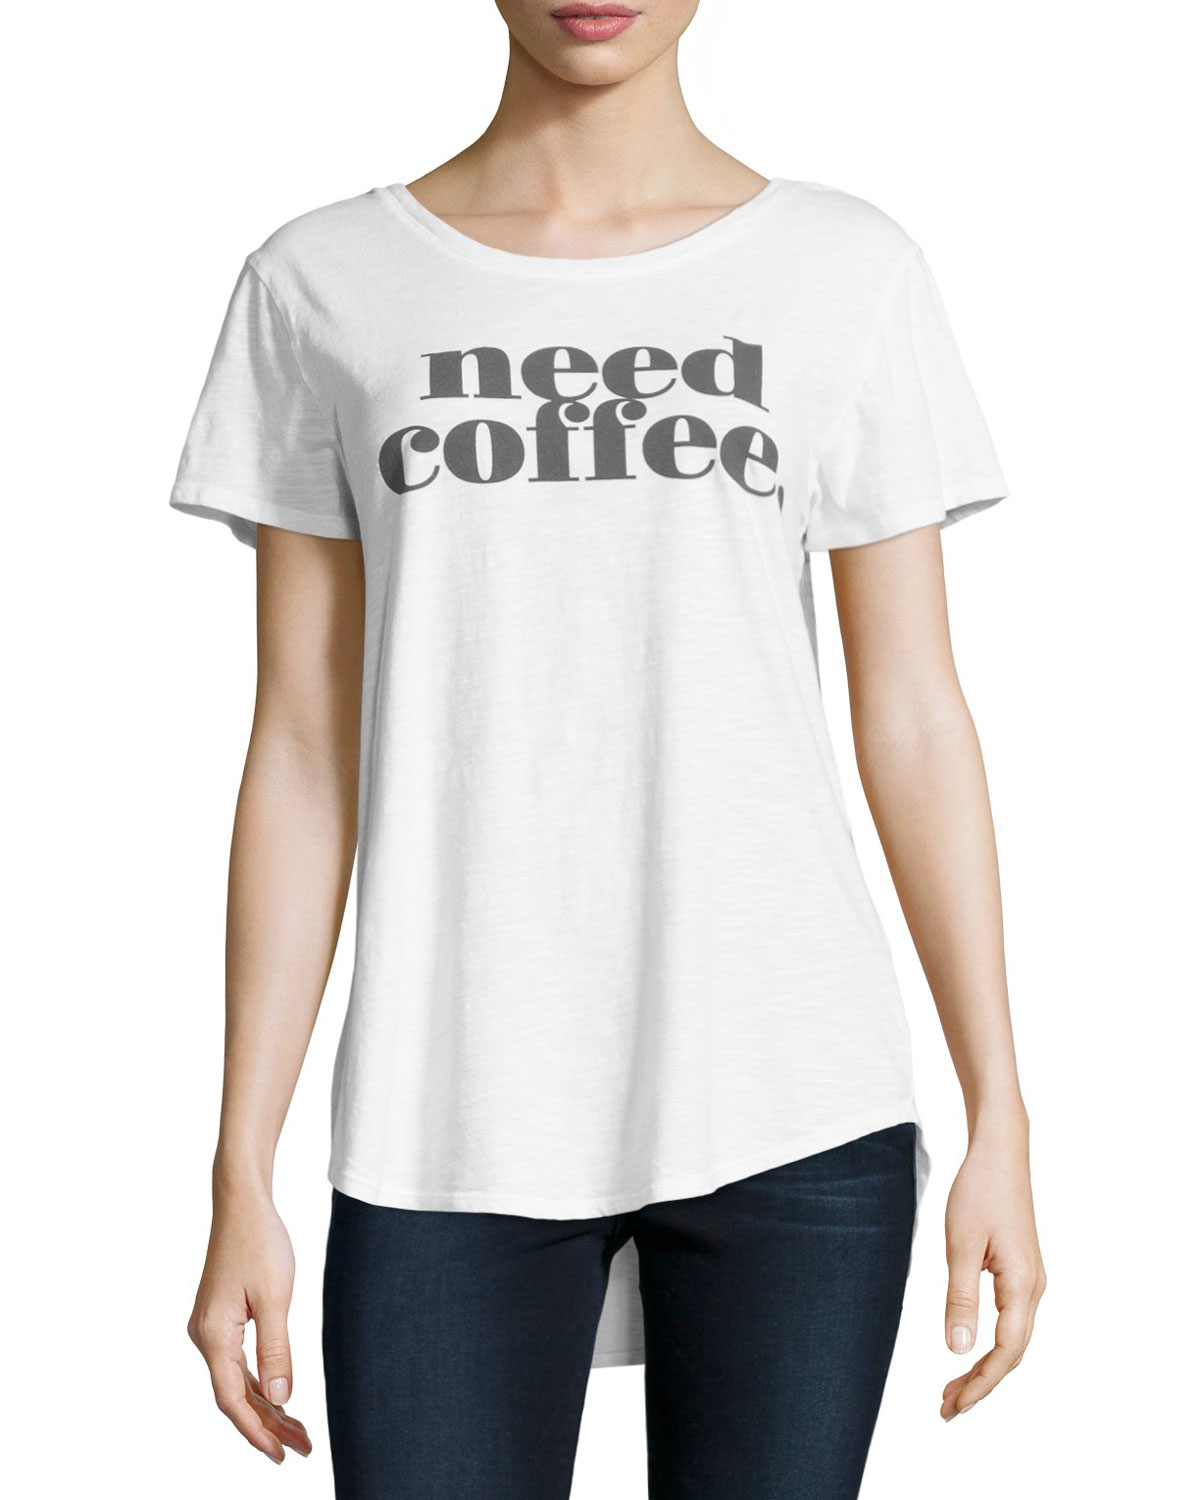 Signorelli Need Coffee Graphic Tee in White